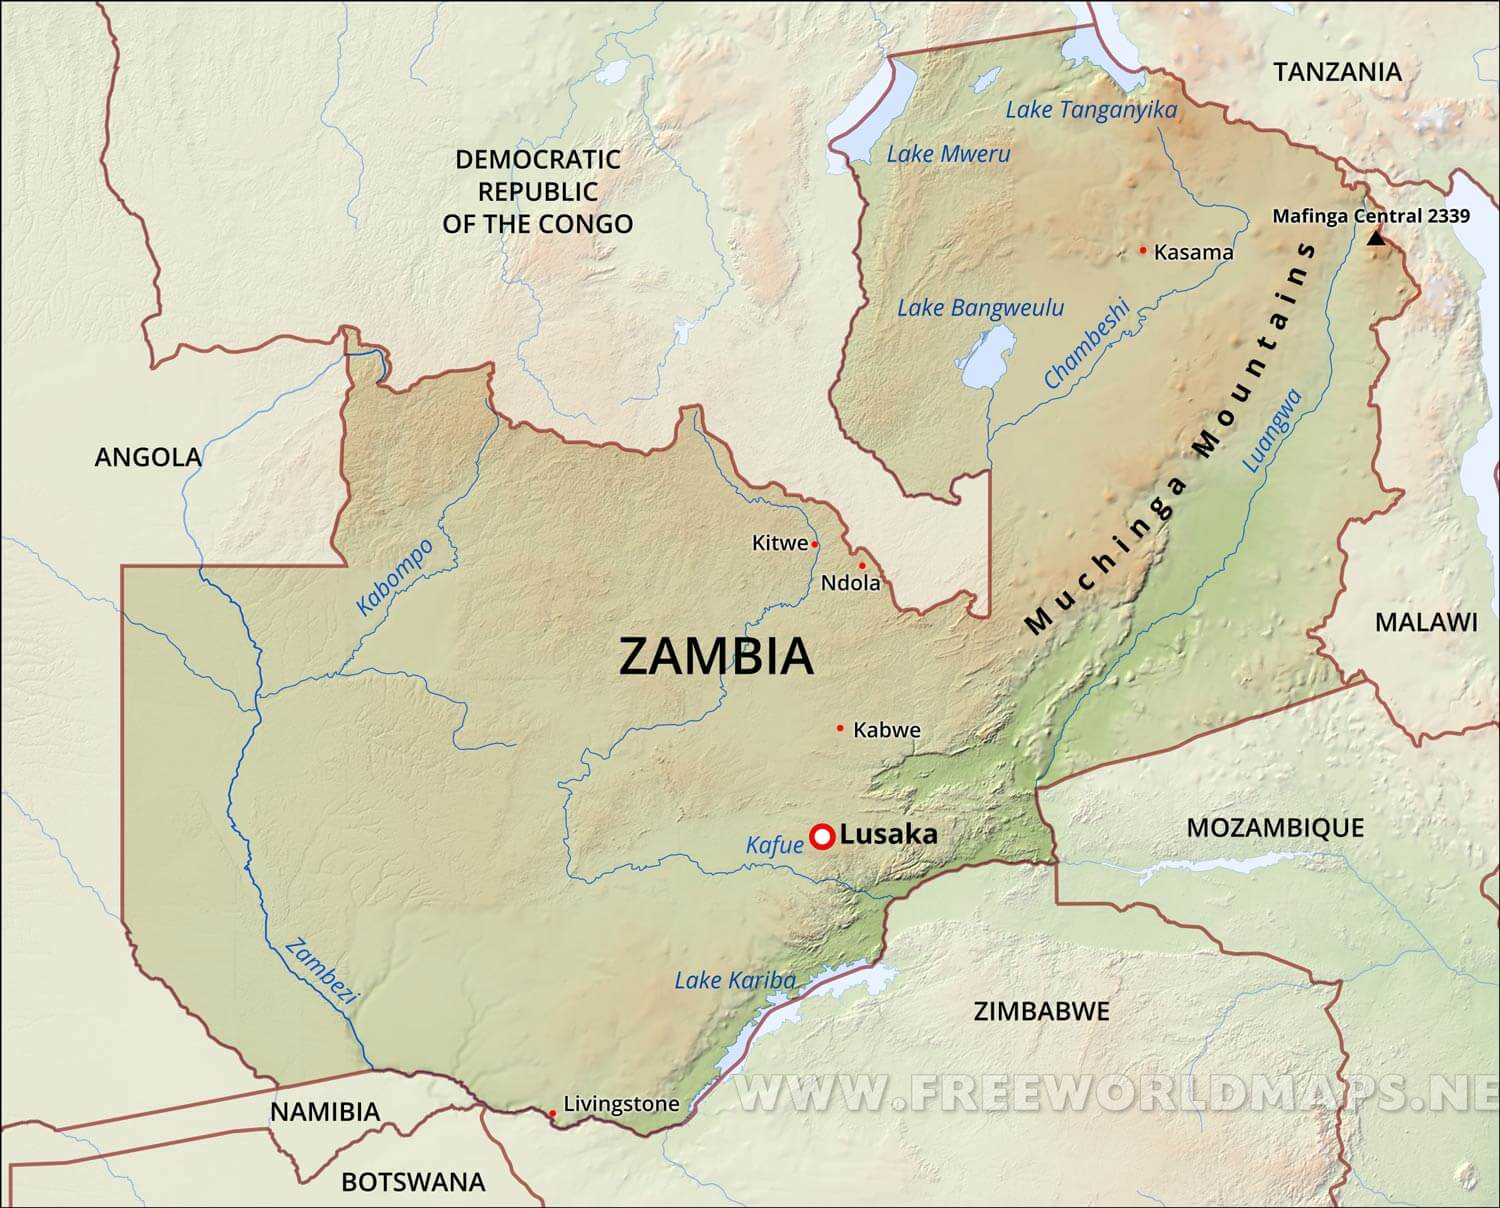 Zambia Physical Map on physical map of former ussr, physical map of lake tanganyika, physical map of st. thomas, physical map of u.s.a, physical map of republic of congo, physical map of katanga province, physical map of australi, physical map of cape of good hope, physical map of baltic countries, physical map of orange river, physical map of nauru, physical map of baltic states, physical map of n. america, physical map of new zeland, physical map of paraguay, physical map of the virgin islands, physical map of polynesia, physical map of bodies of water, physical map of zimbabwe, physical map of country,